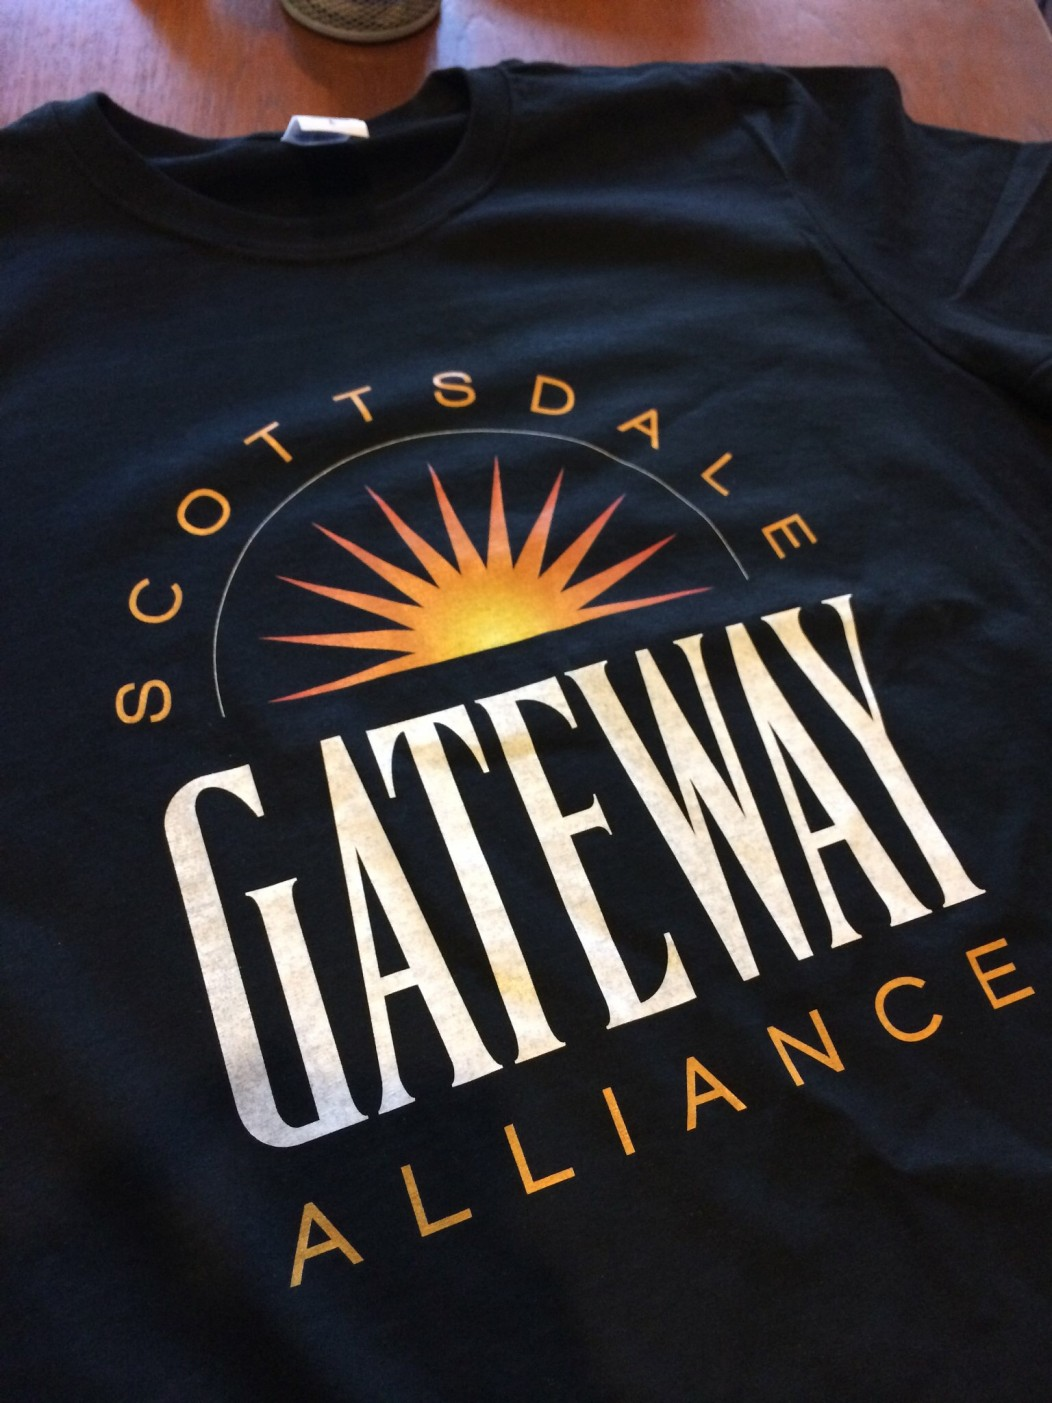 5a5d8e96c Scottsdale Gateway Alliance: DIRECT TO GARMENT FULL COLOR T-SHIRT PRINTING